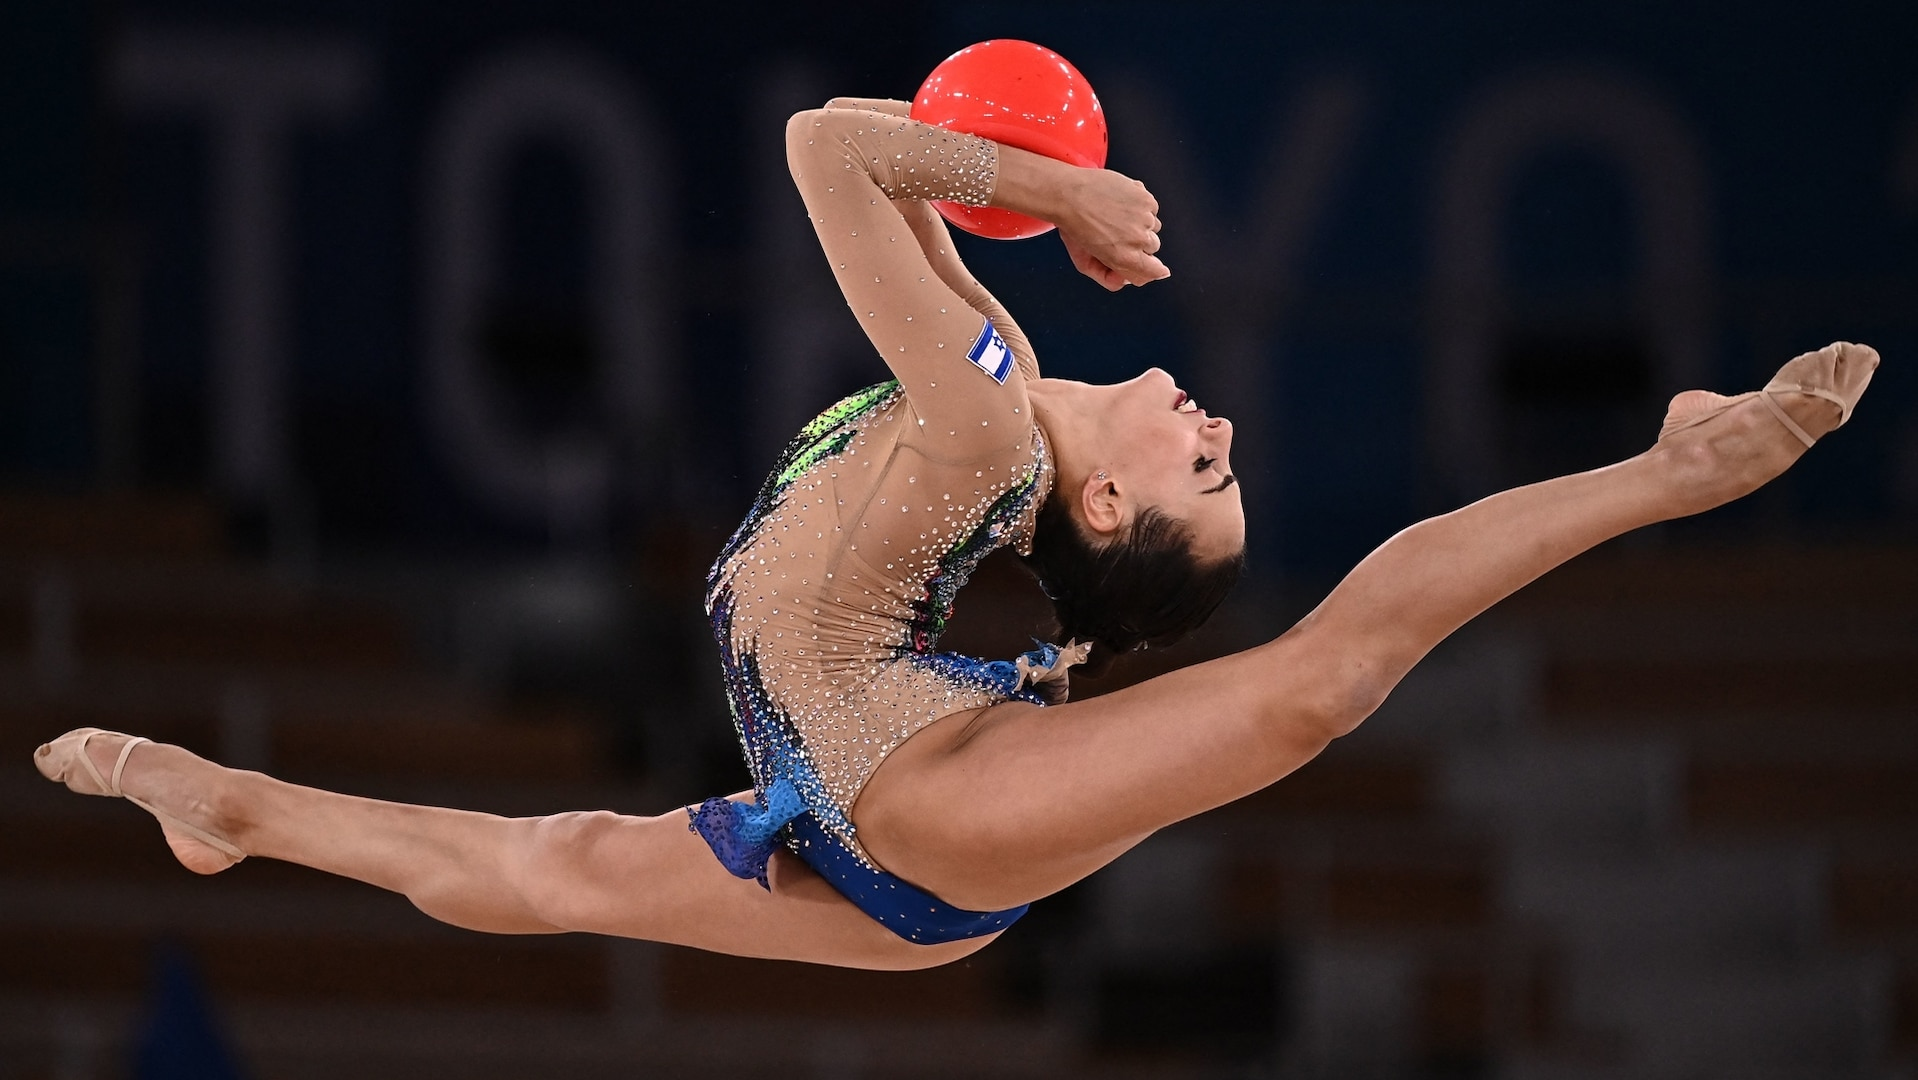 Israel's Linoy Ashram competes in the individual all-around final of the Rhythmic Gymnastics event during Tokyo 2020 Olympic Games